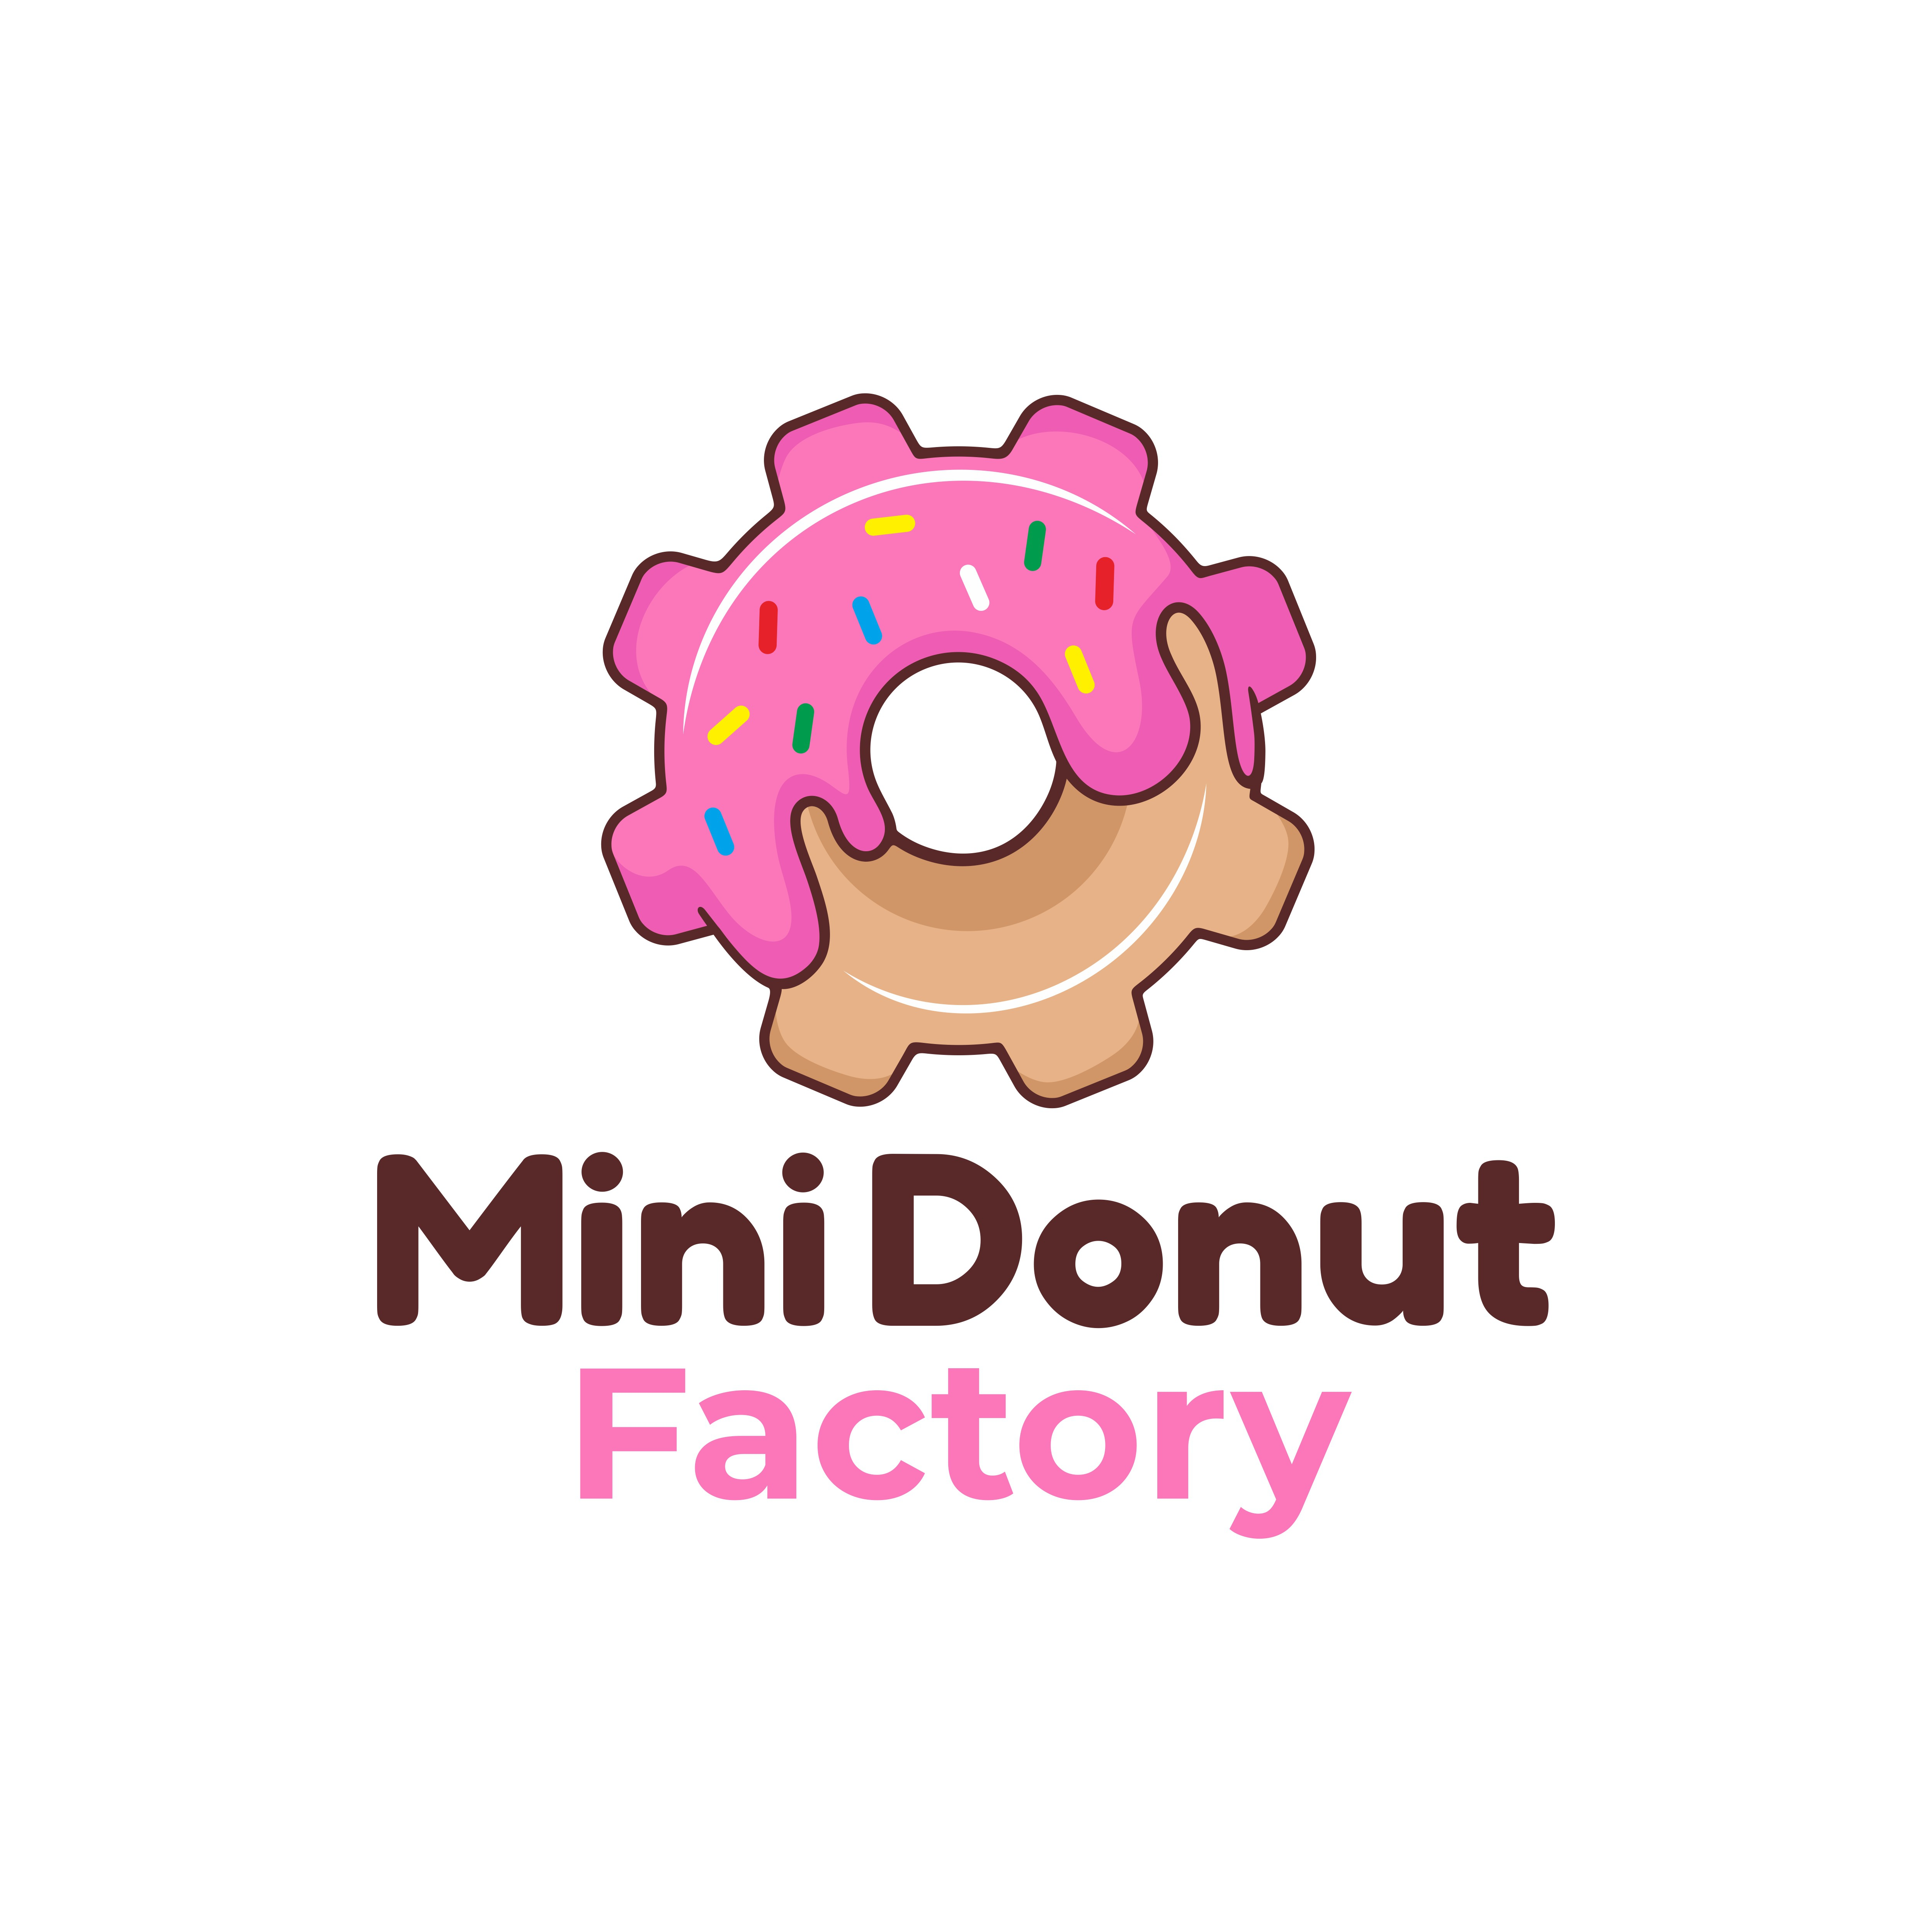 Mini Donut Factory (donut shop) we serve fresh made to order donuts